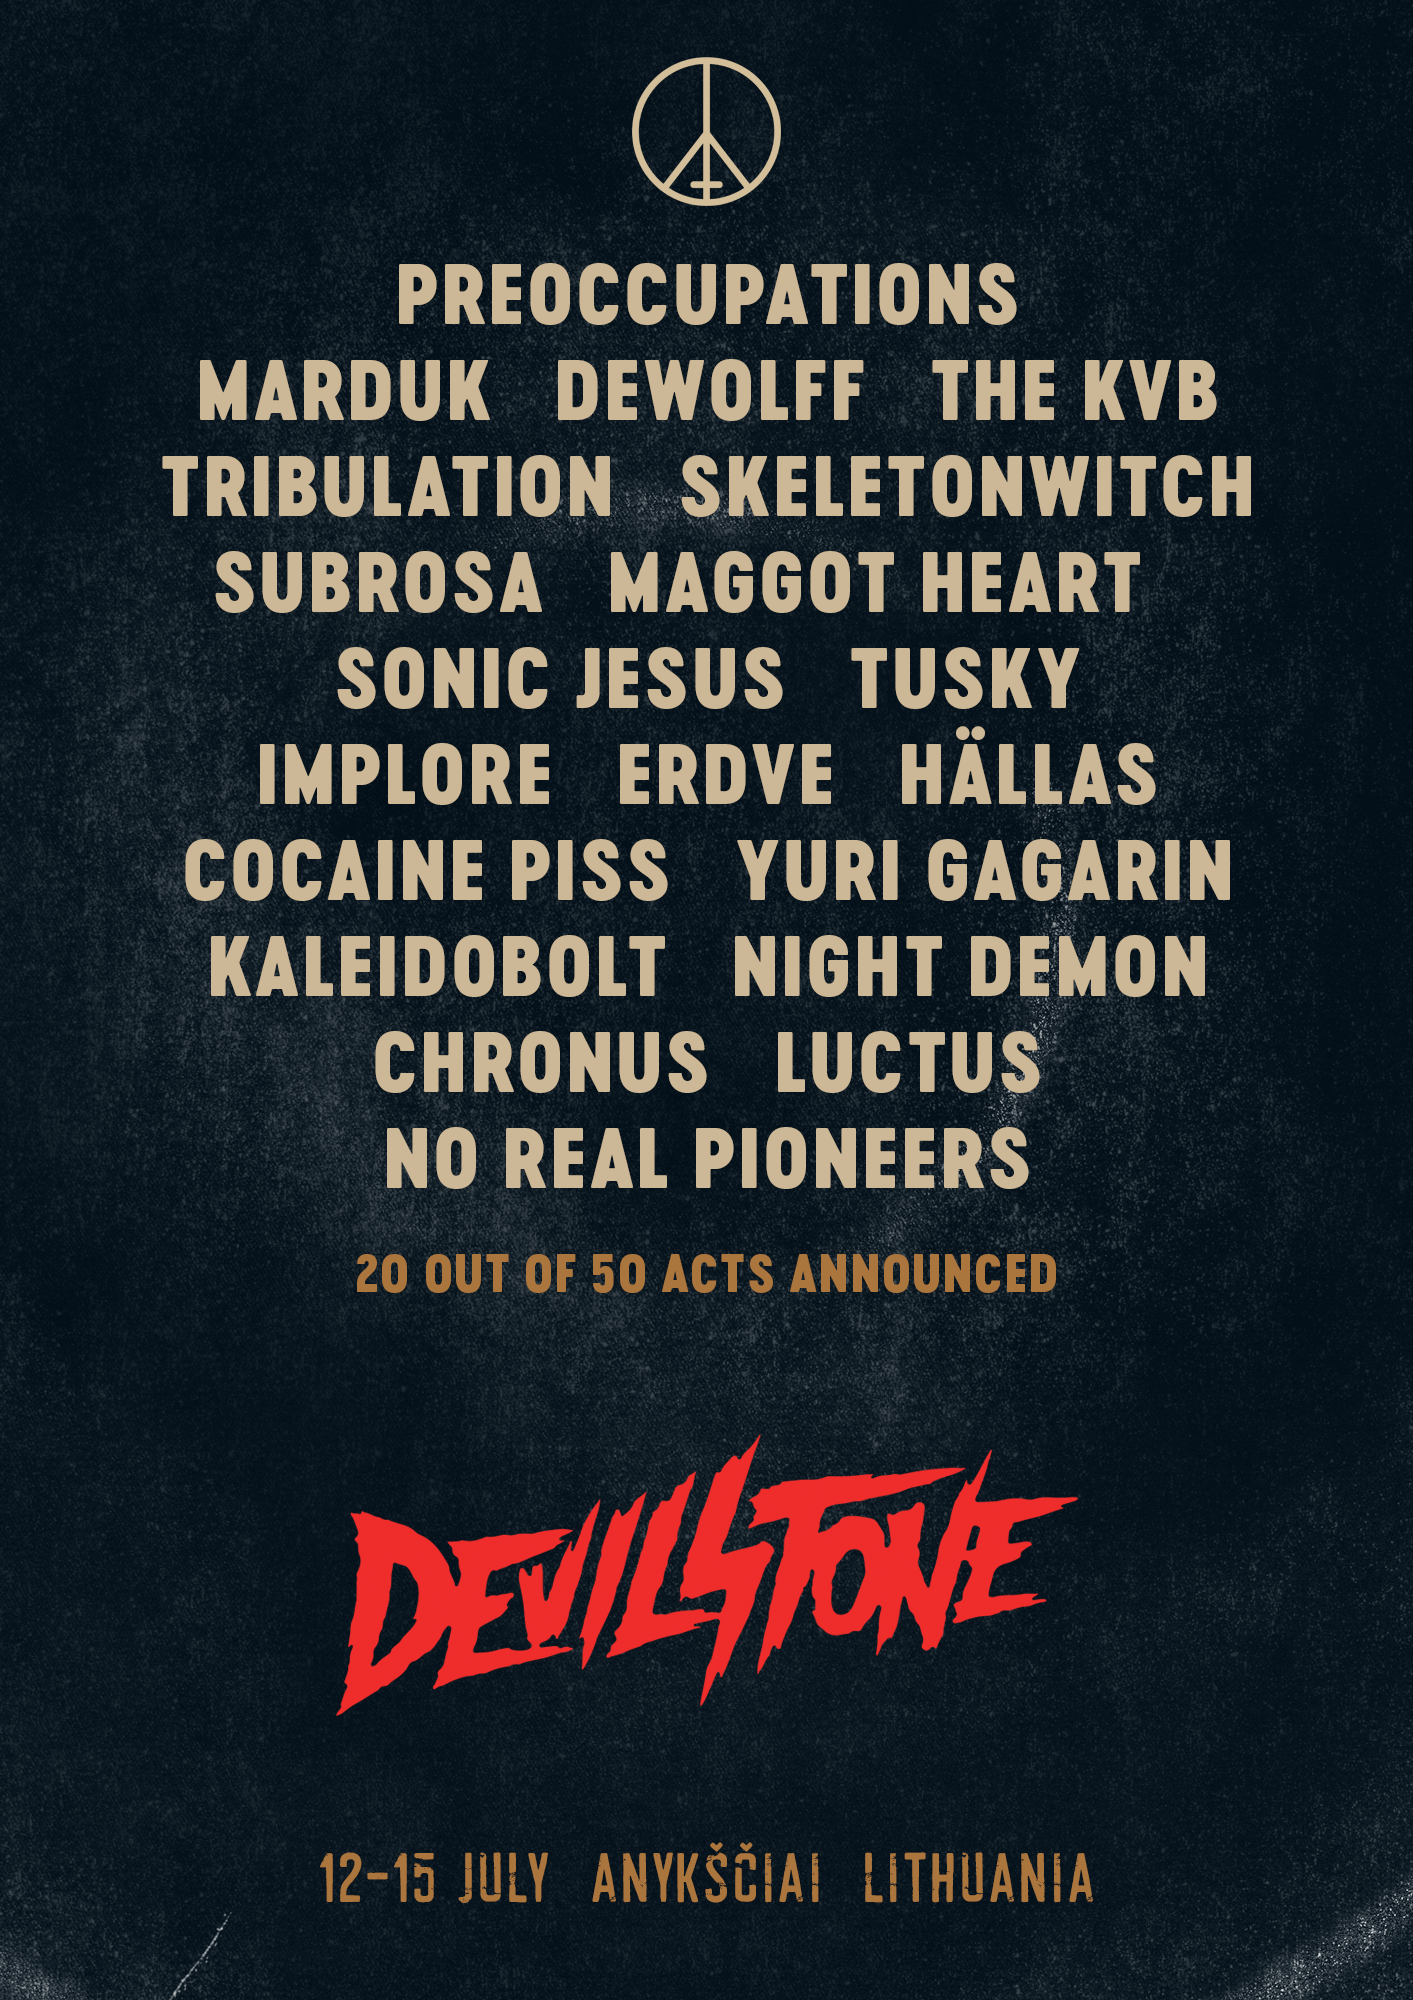 Devilstone Open Air 2018